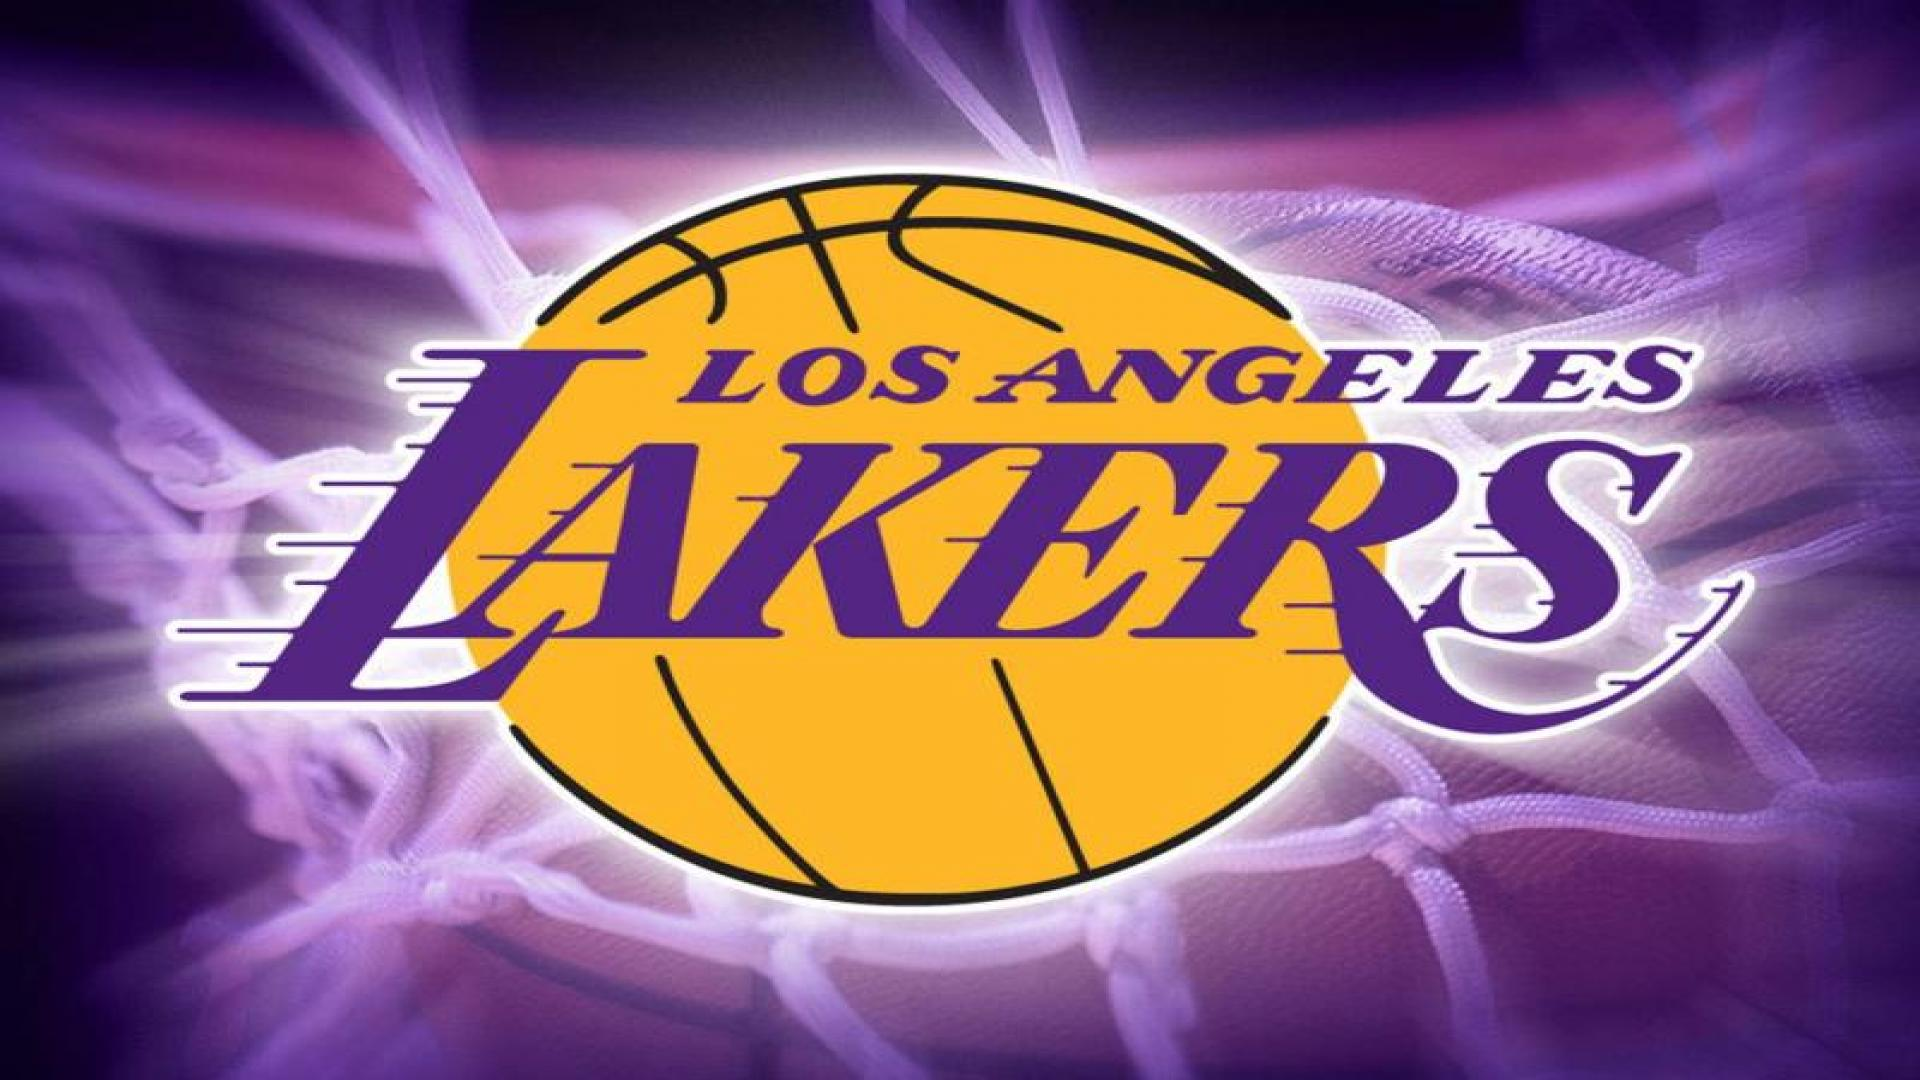 ... Los Angeles Lakers Logo 2013 ...